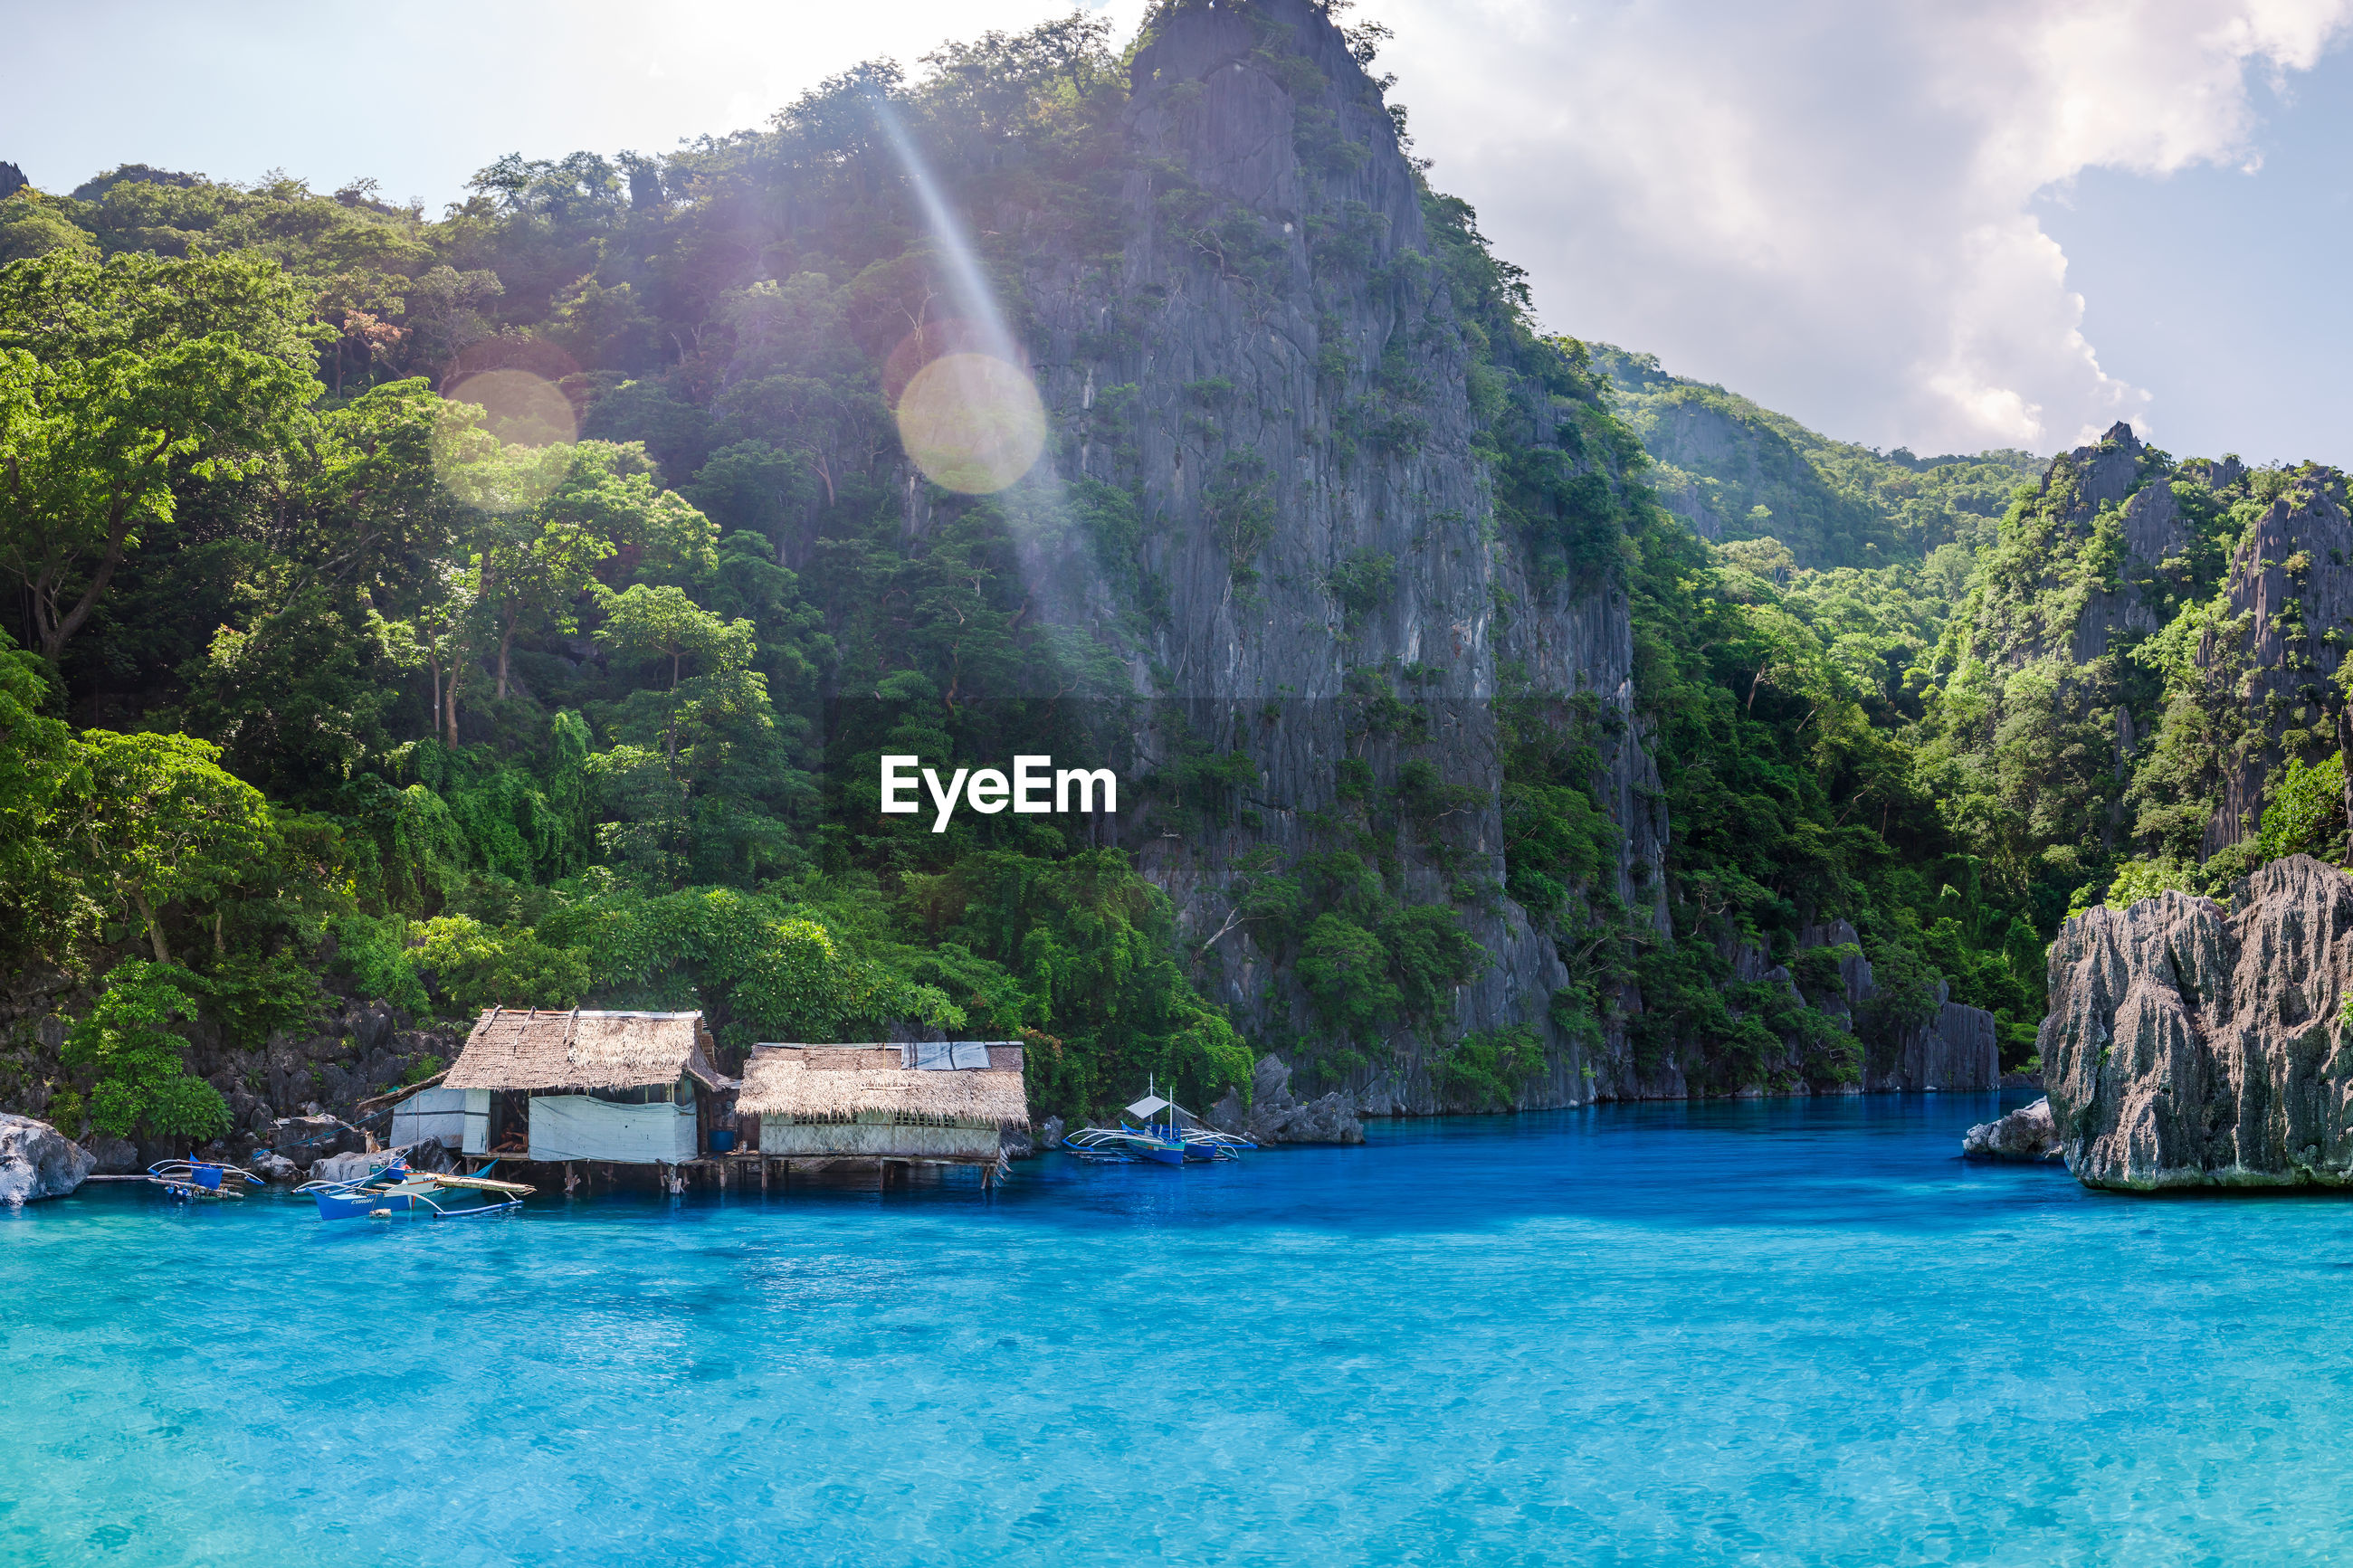 Clear blue waters of coron, palawan, philippines.